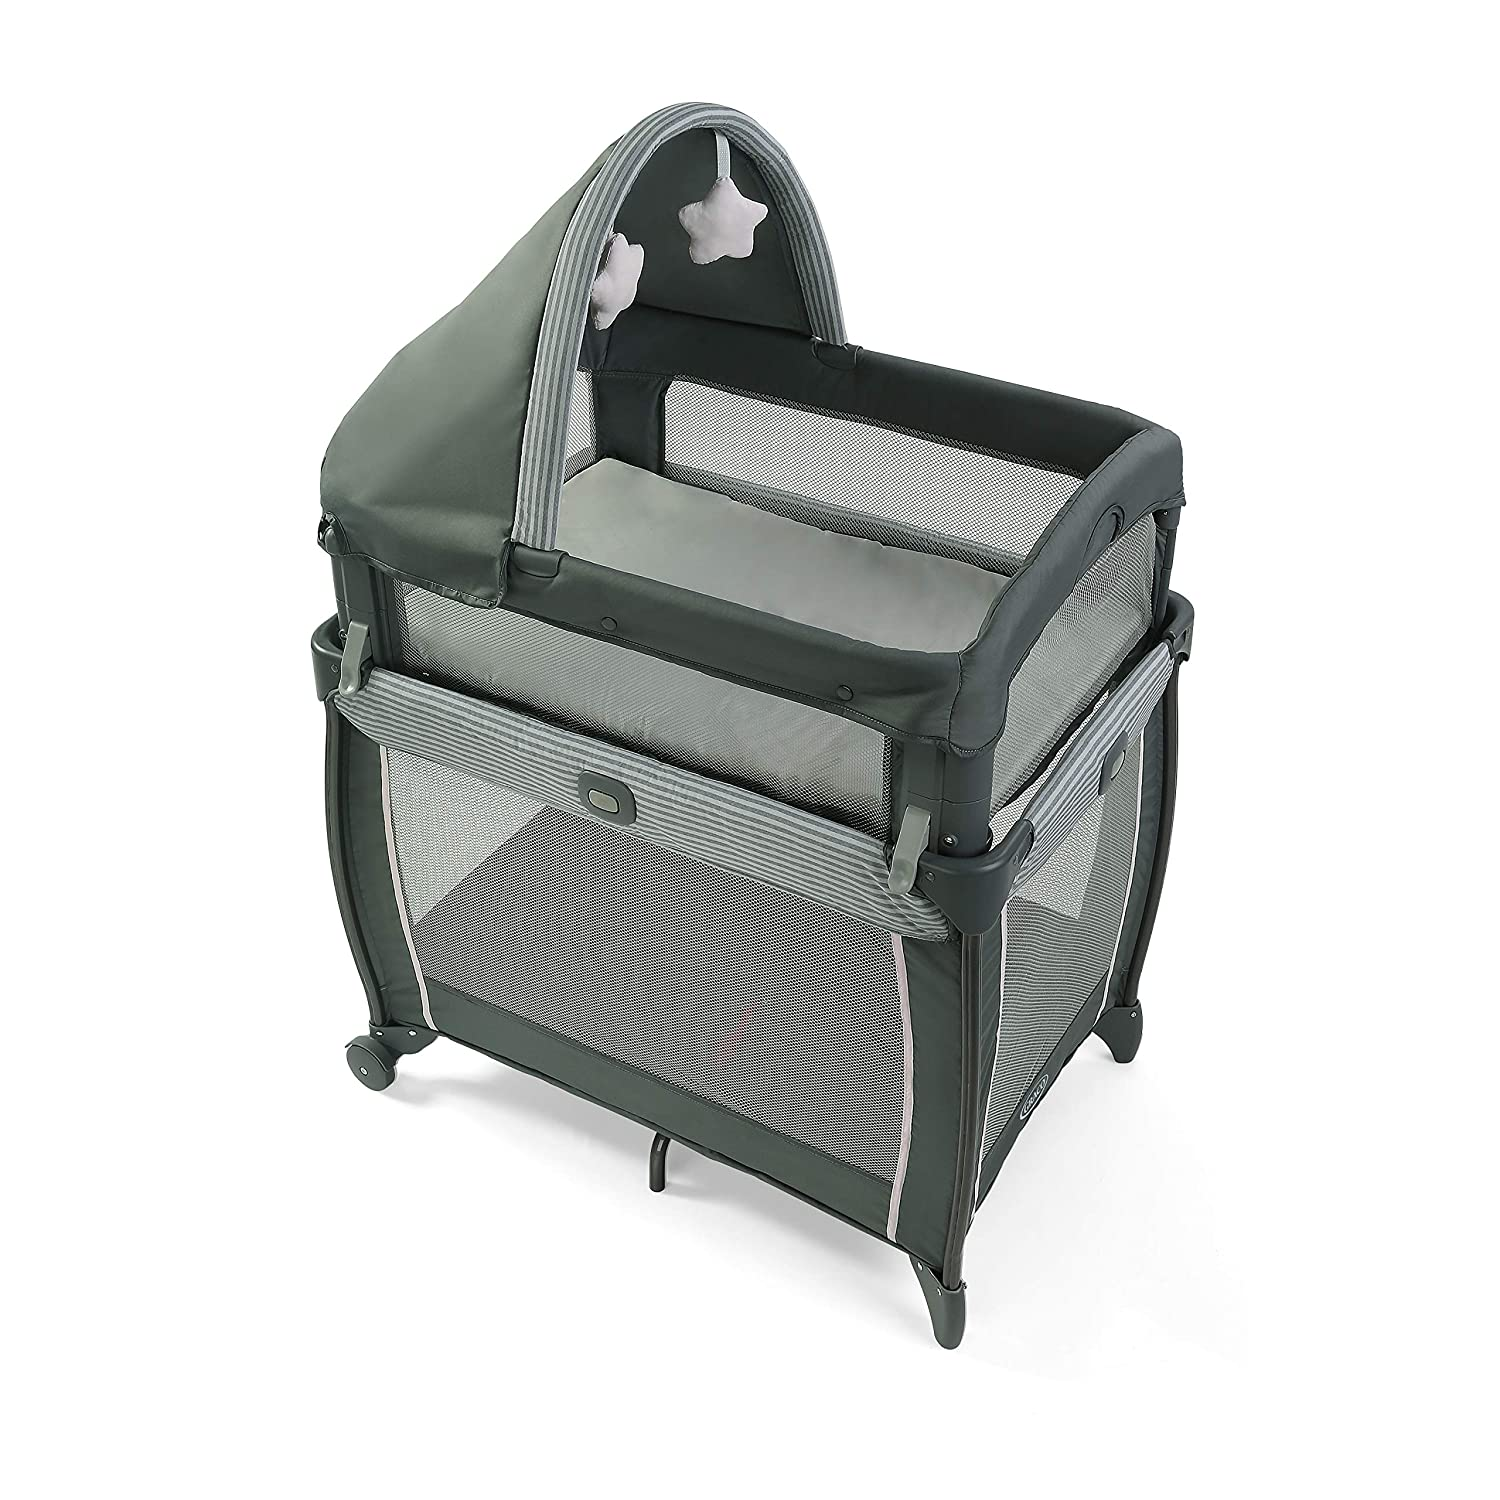 Graco My View 4 in 1 Bassinet | Baby Bassinet with 4 Stages, Including Raised Bassinet at Eye Level, Montana